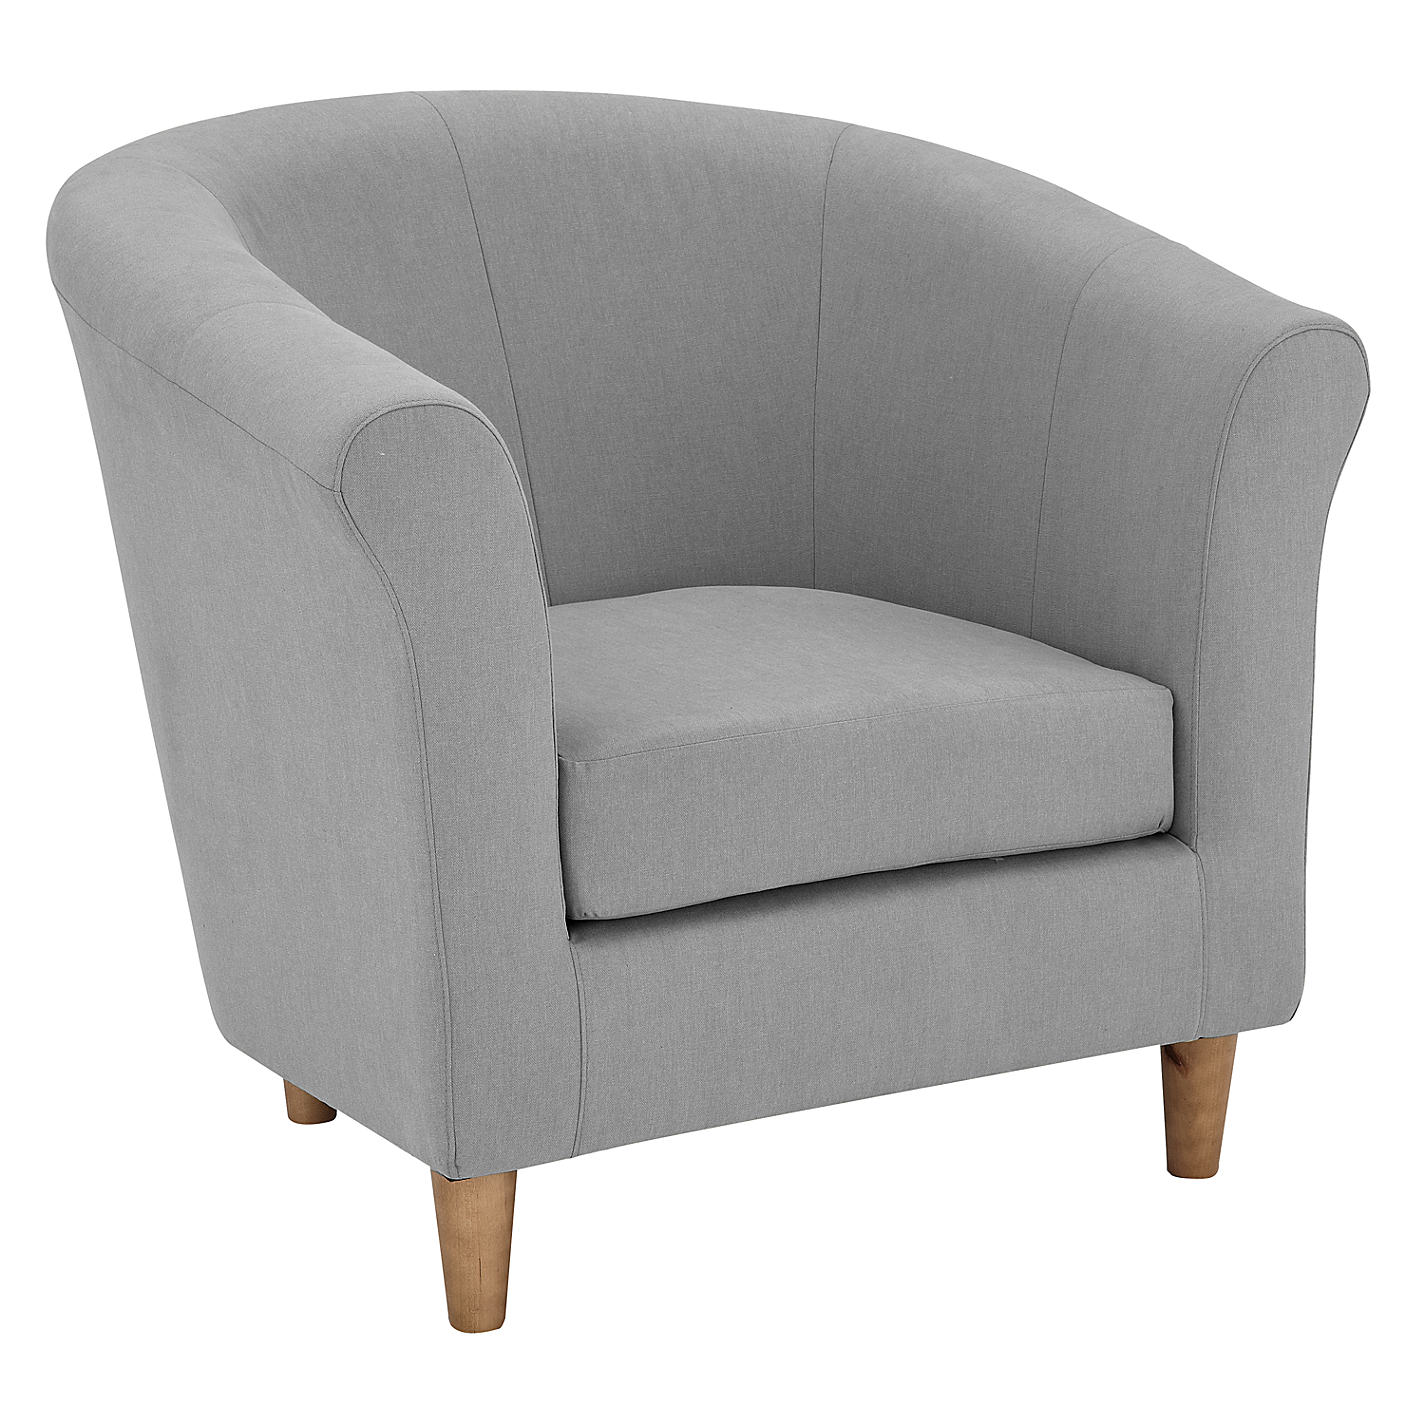 Buy John Lewis The Basics Juliet Armchair